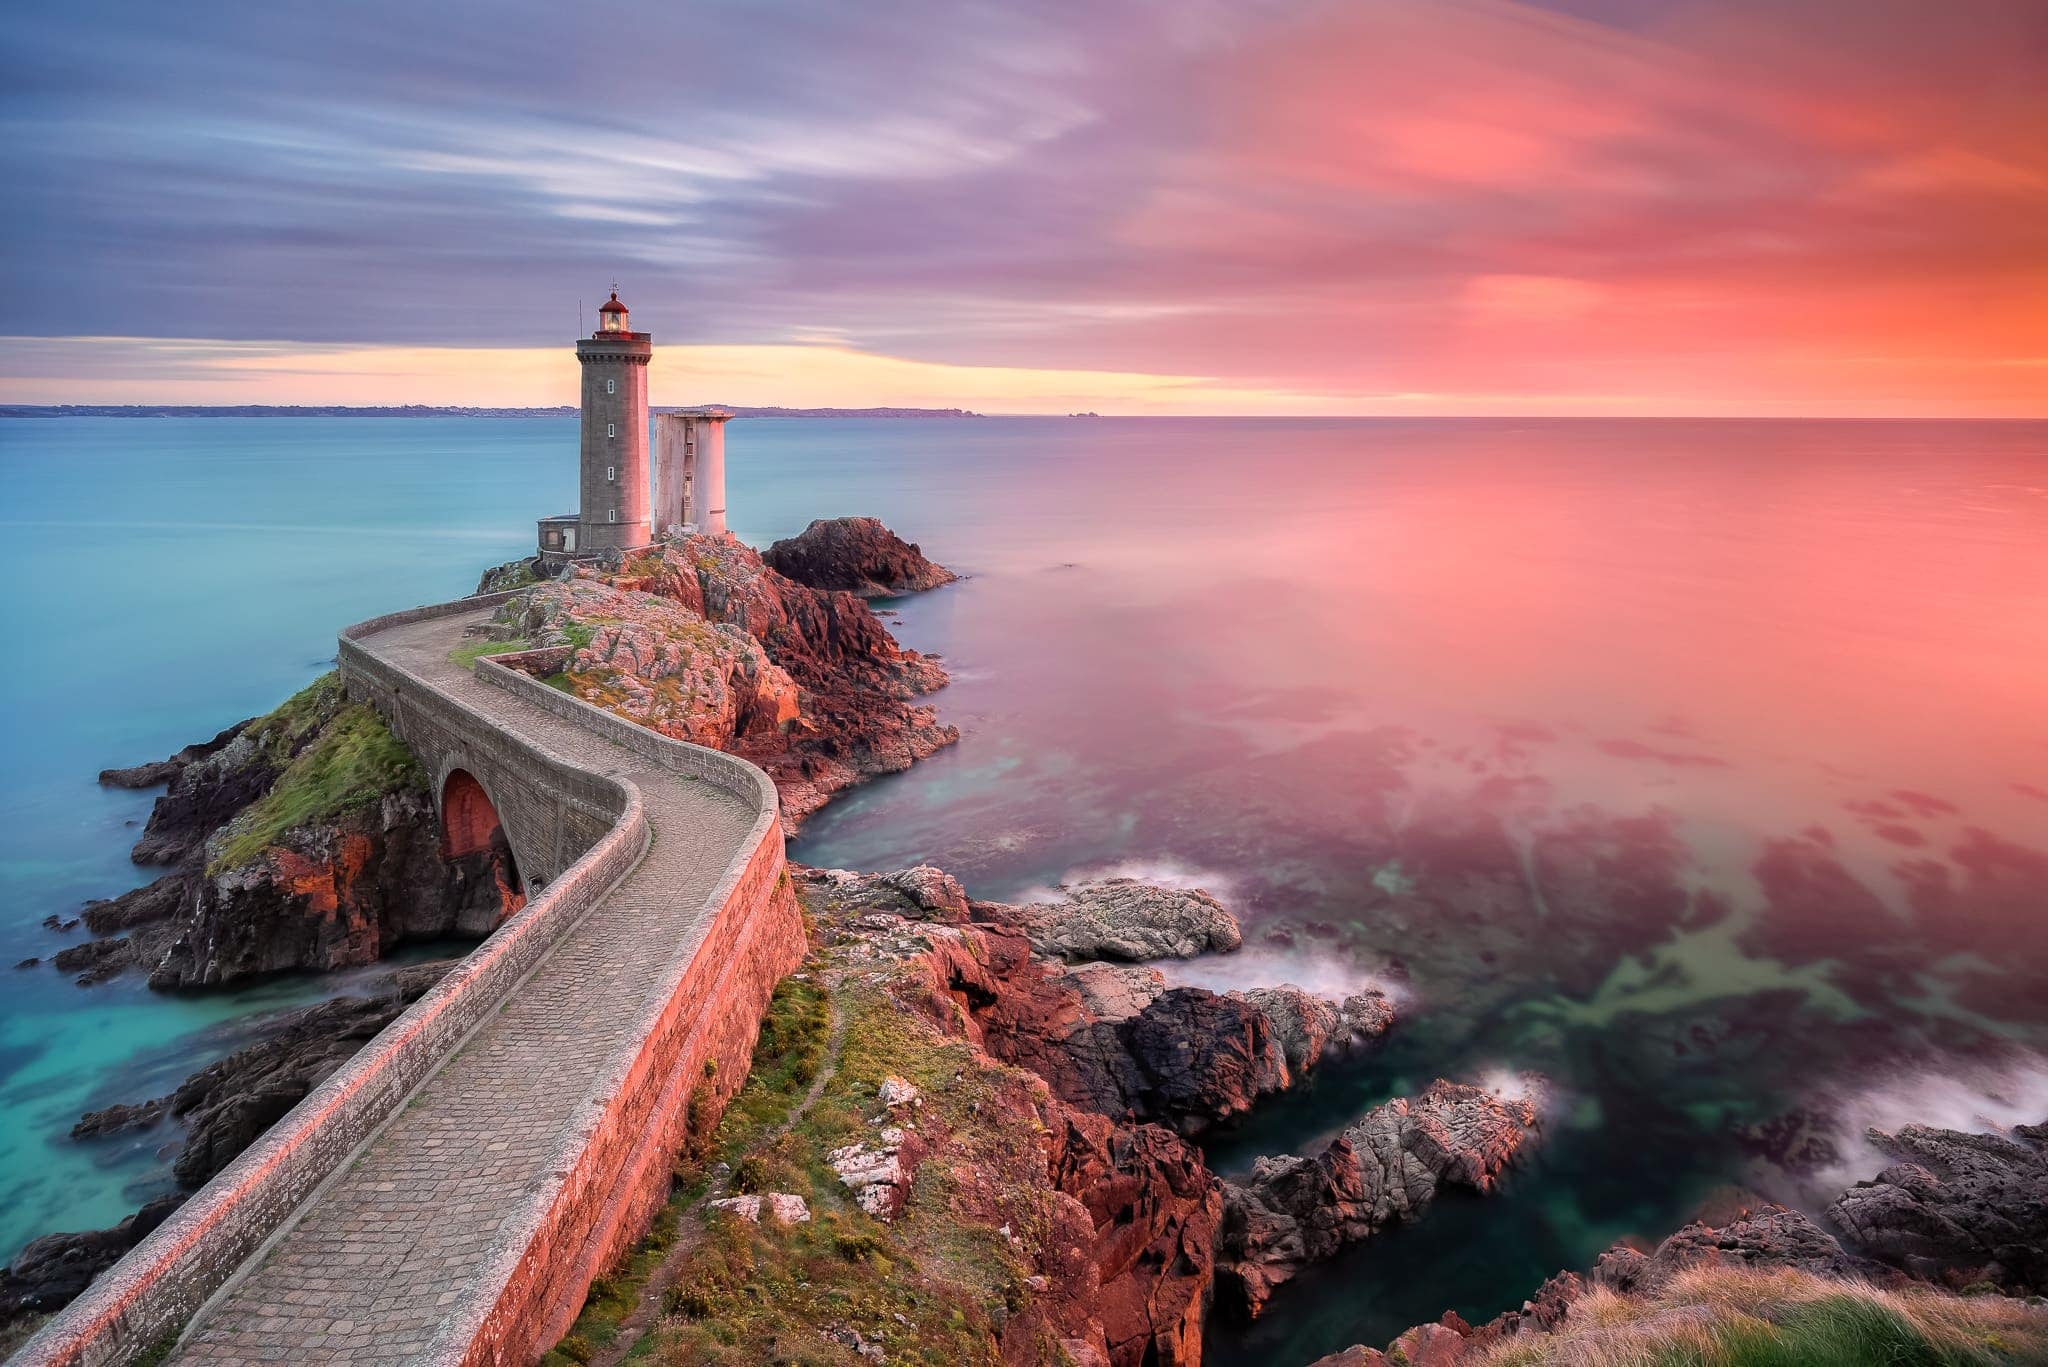 Francesco Gola Seascape Landscape Photography Brittany Bretagne Lighthouse France Petit Minou Long Exposure